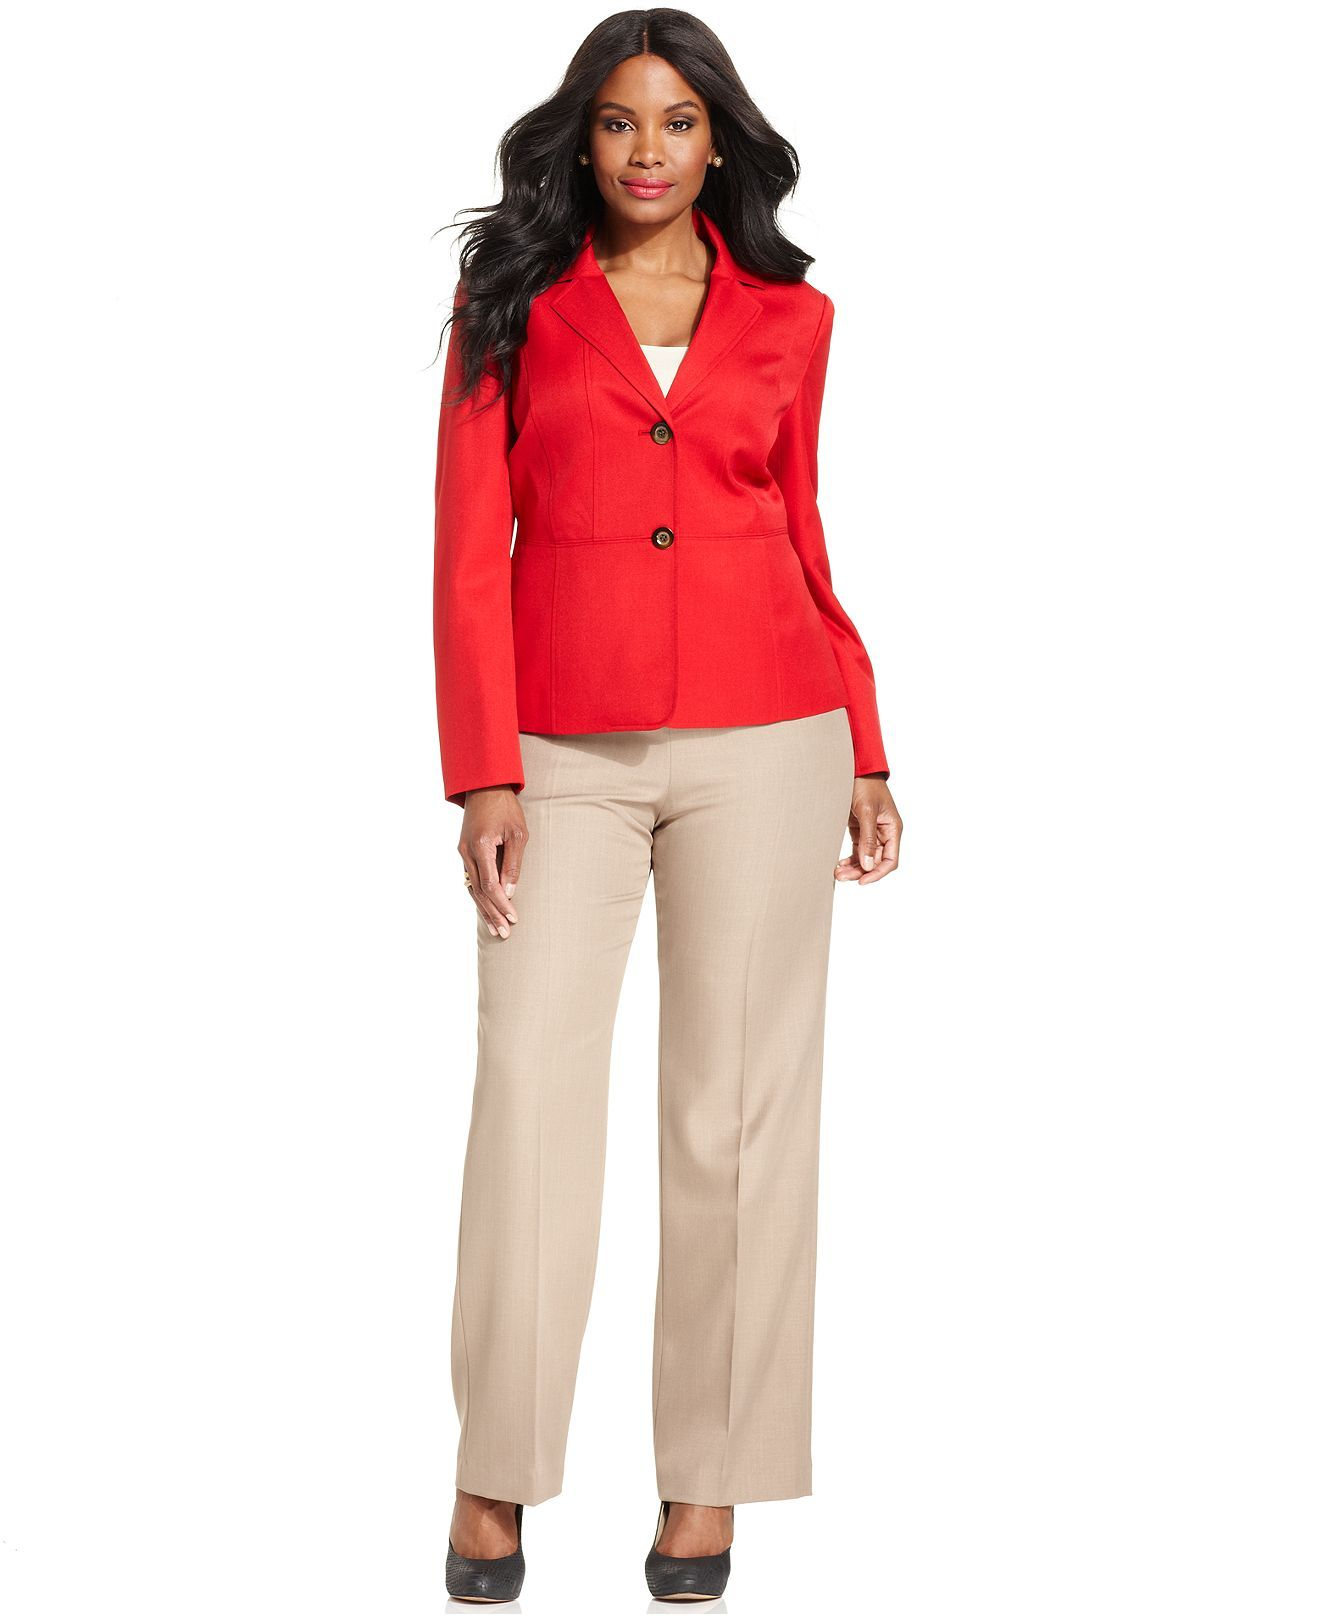 Pin by Jade Morrow on Plus Size Women | Red dress pants, Plus size ...